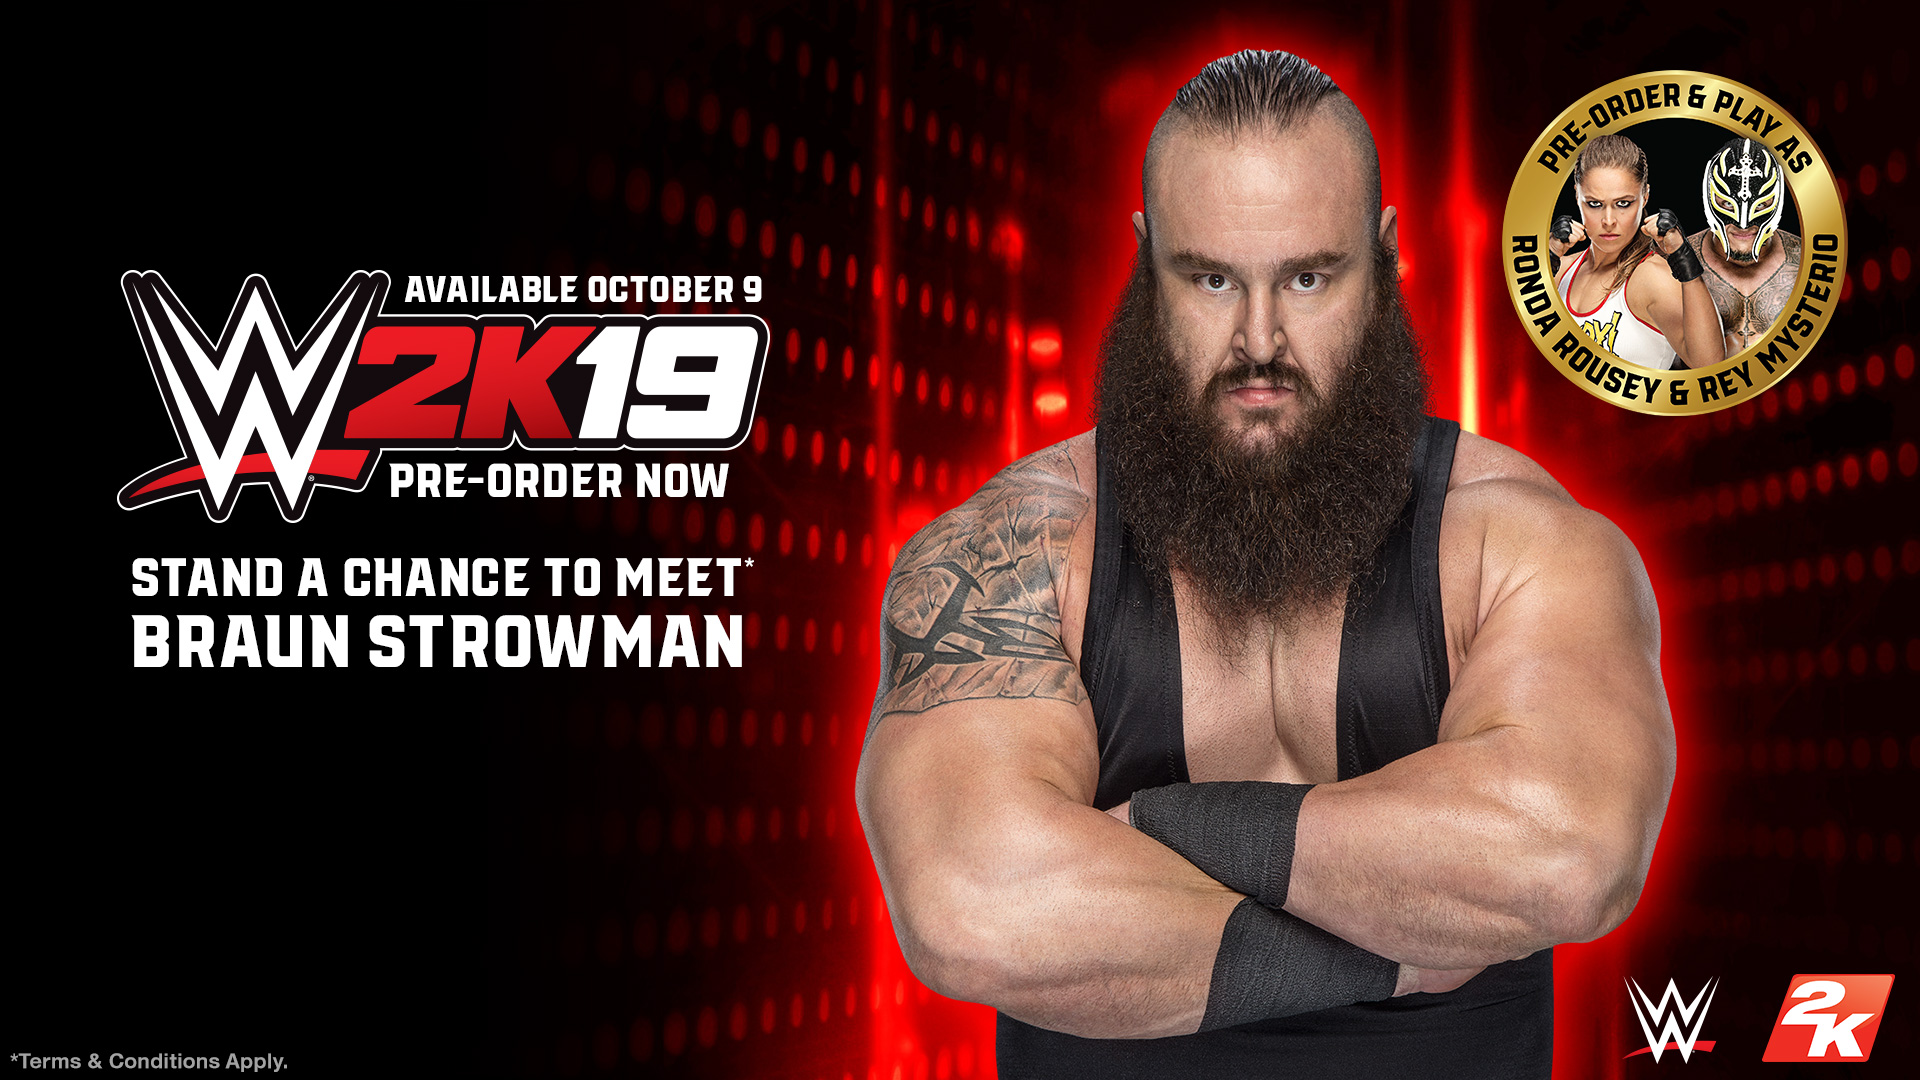 WWE 2K19 Braun Strowman Meet and Greet